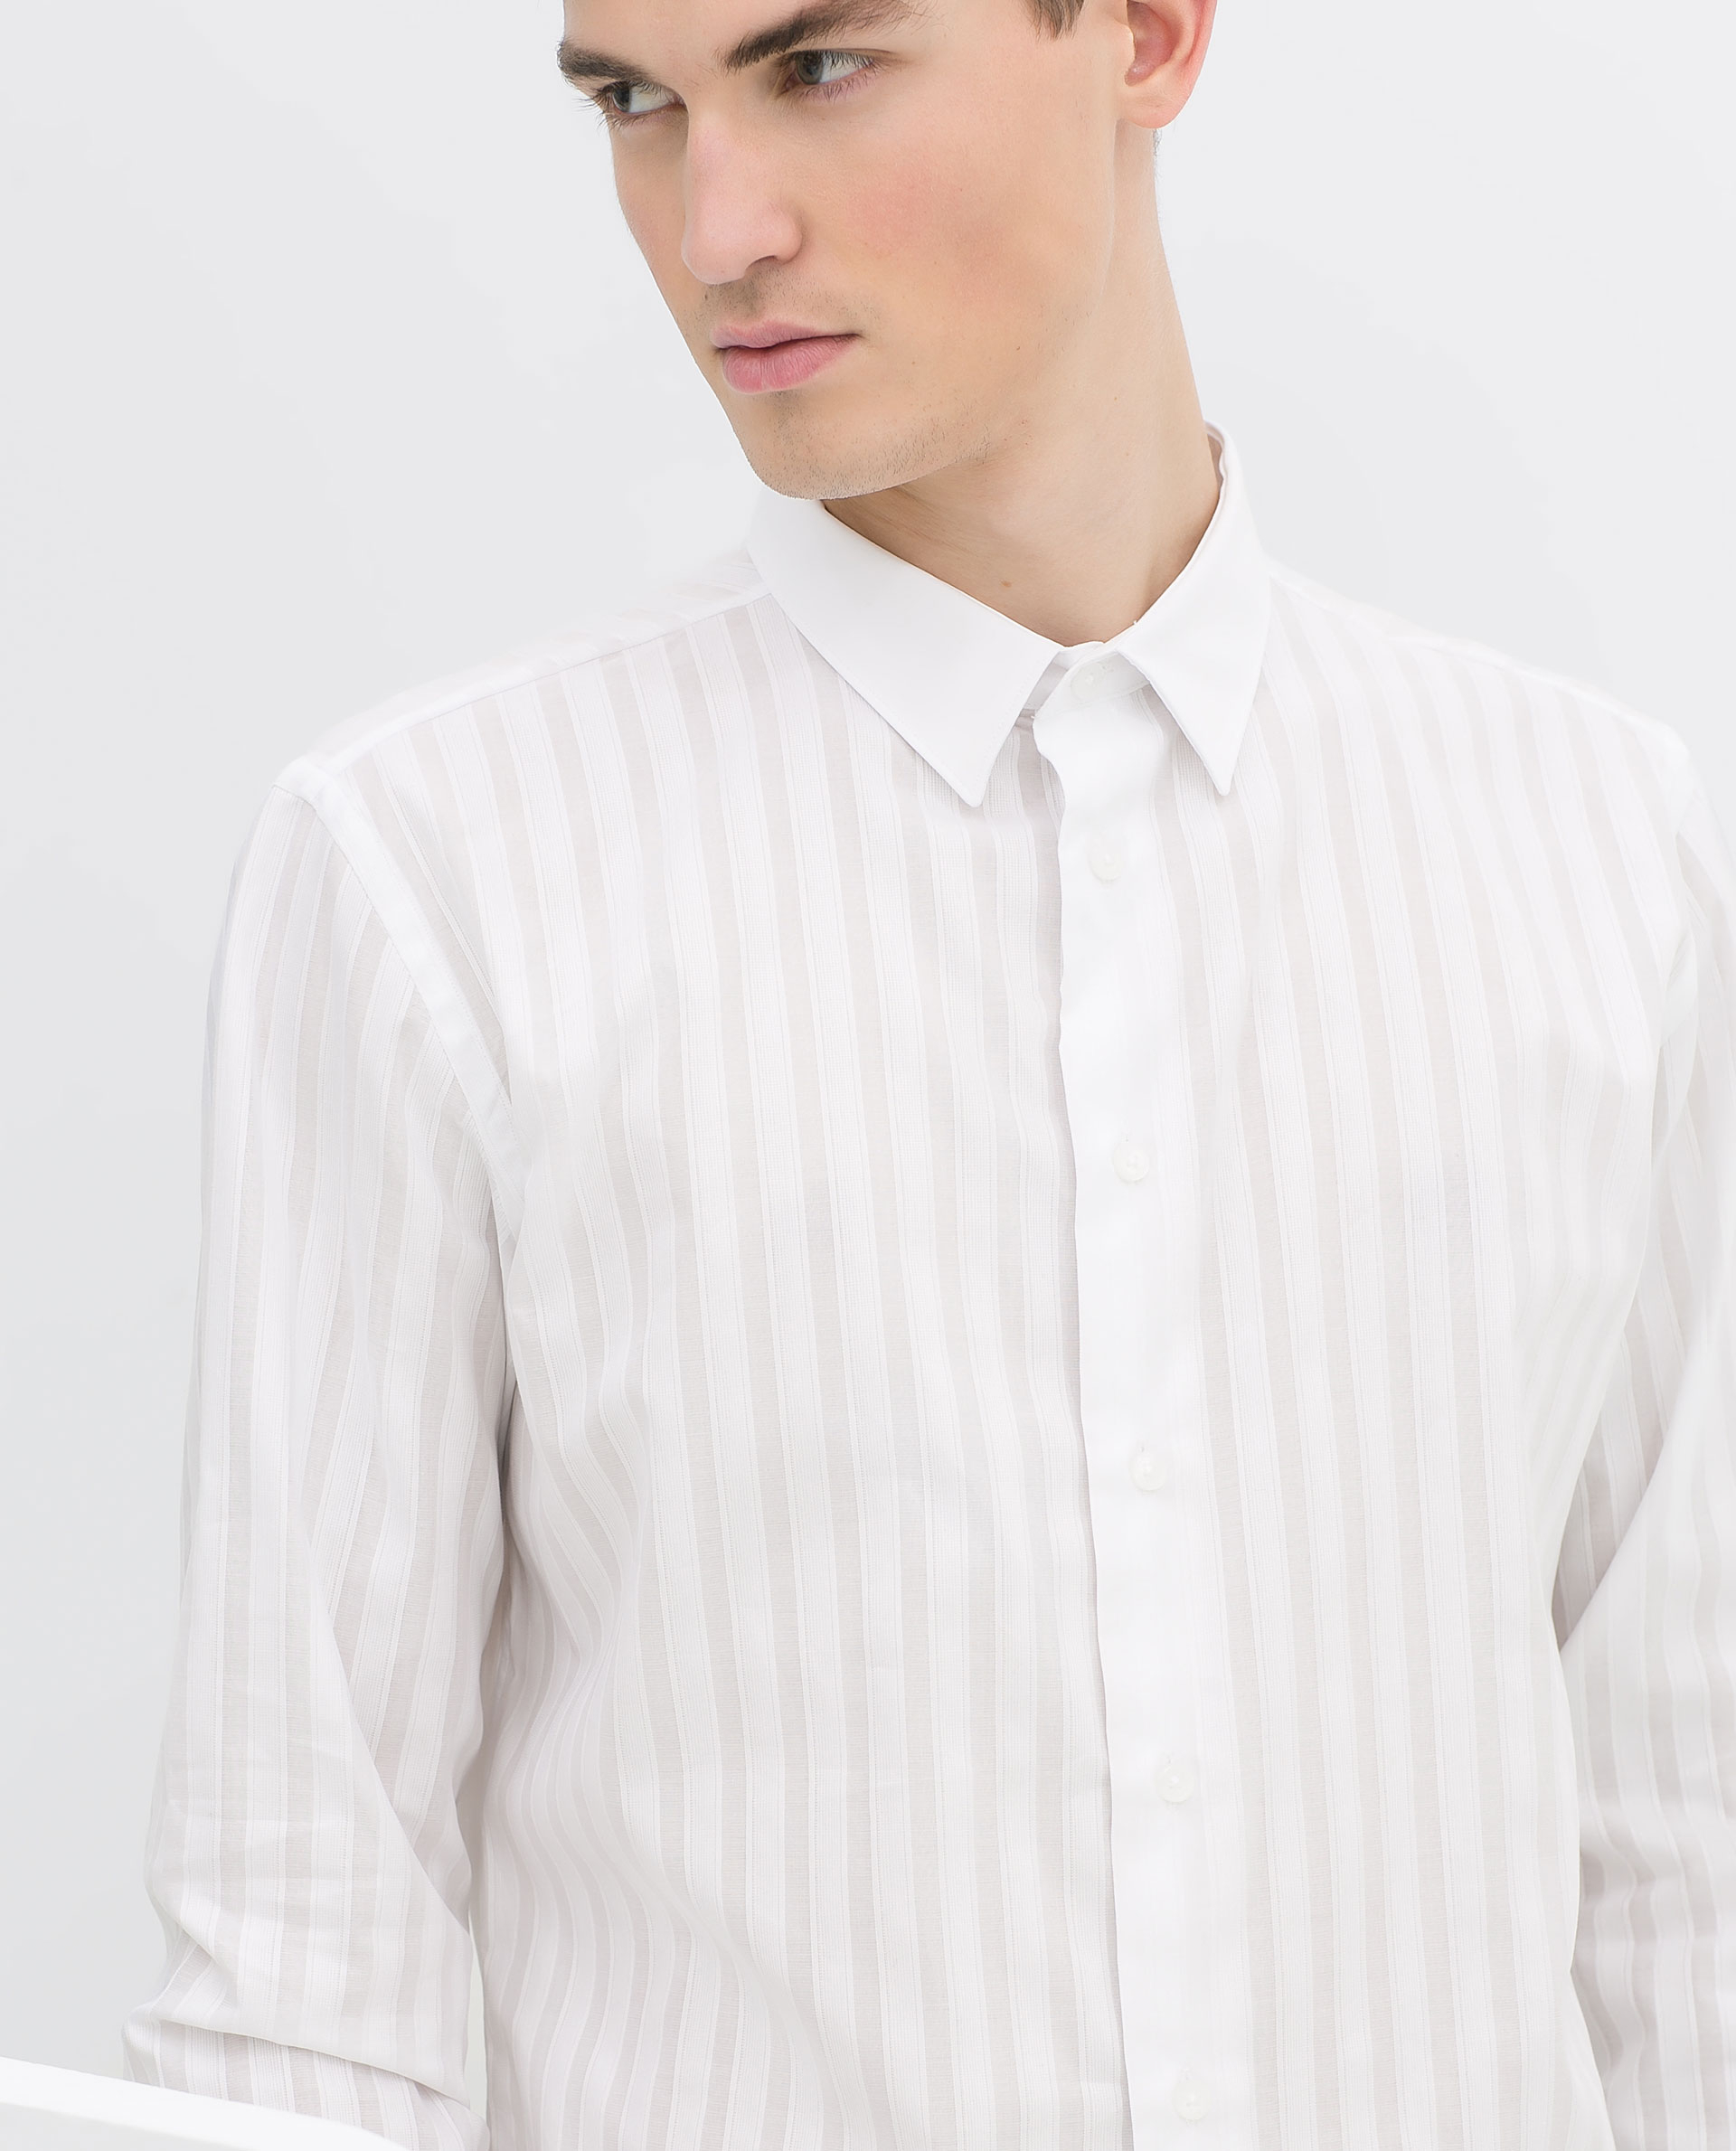 Zara Shirt With Contrasting Collar And Cuffs In White For